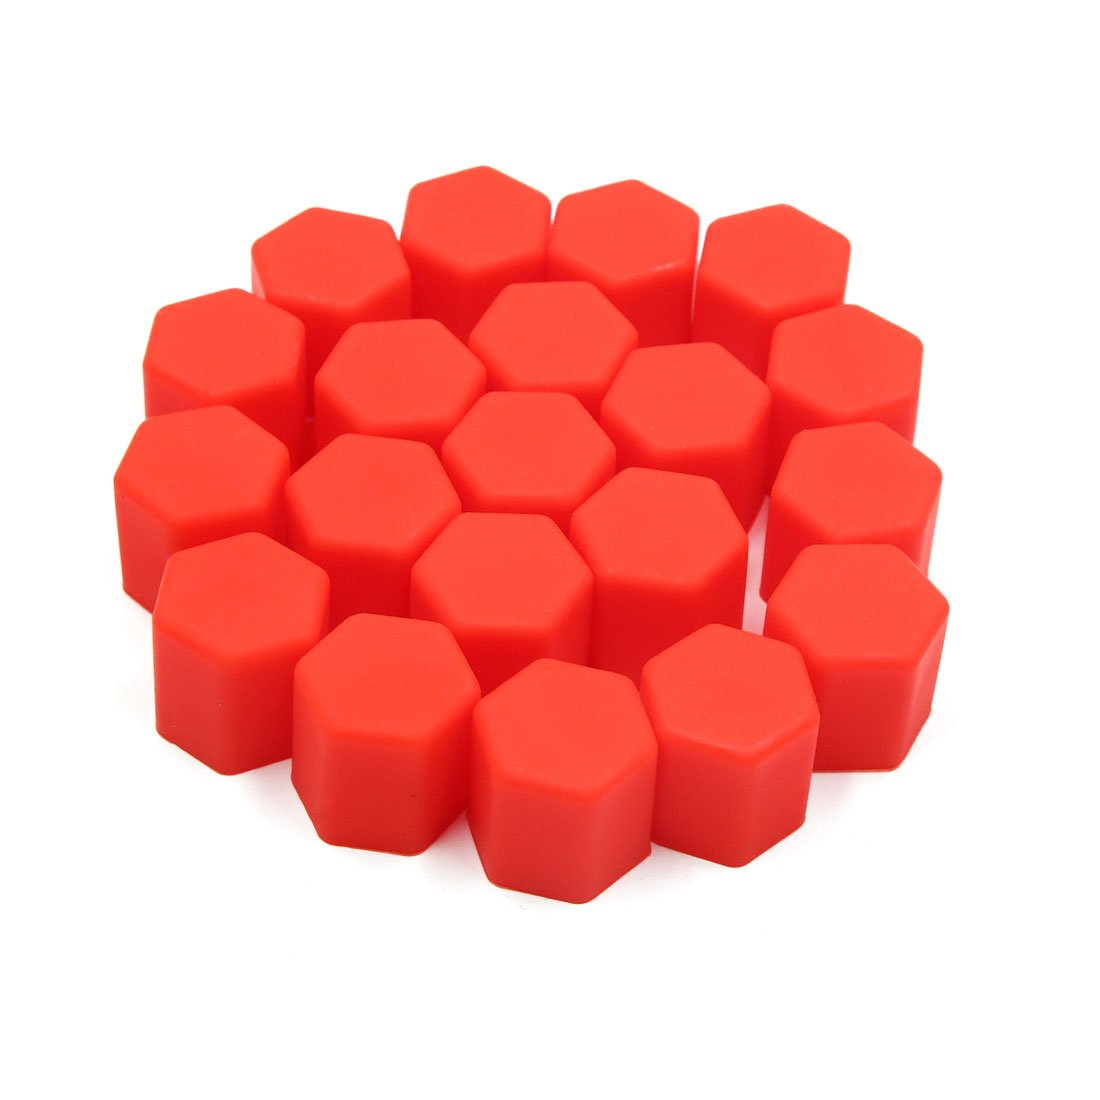 uxcell 20pcs 15mm Rubber Car Wheel Tire Nut Screw Lug Dust Cover Caps Hub Protector Red a18042000ux0121